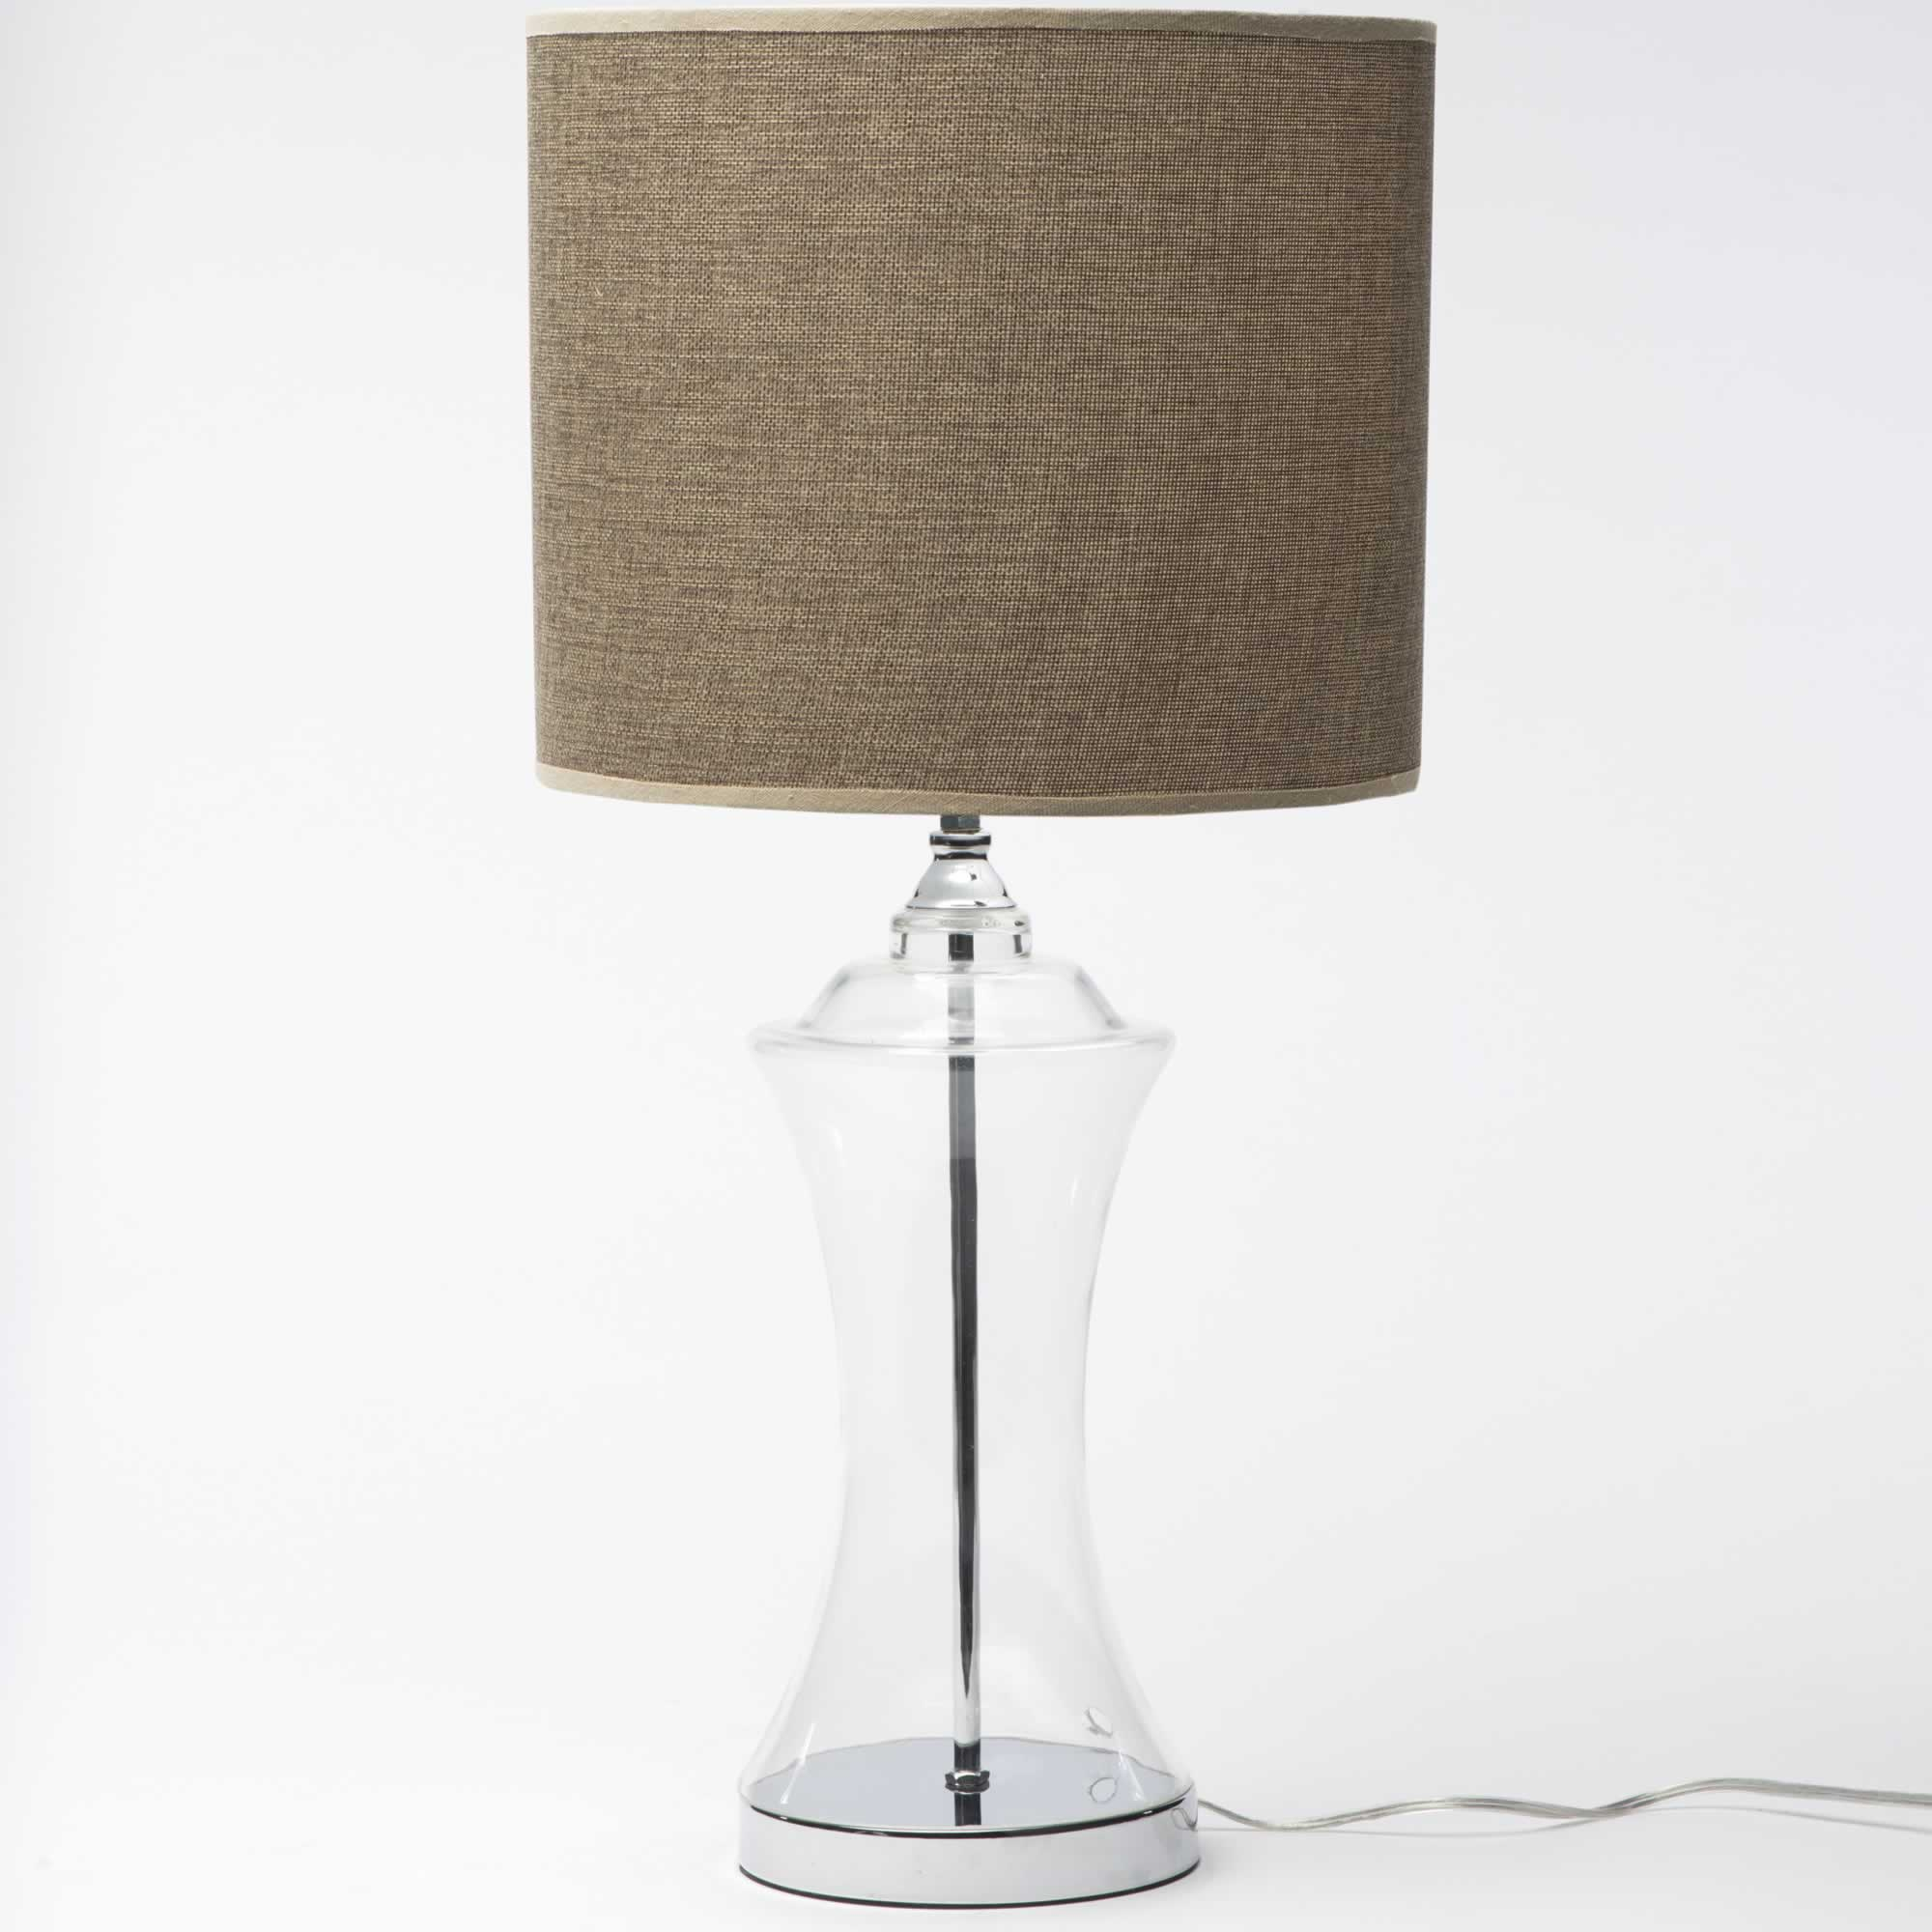 The Subtle 1970s Table Lamp - TL0007